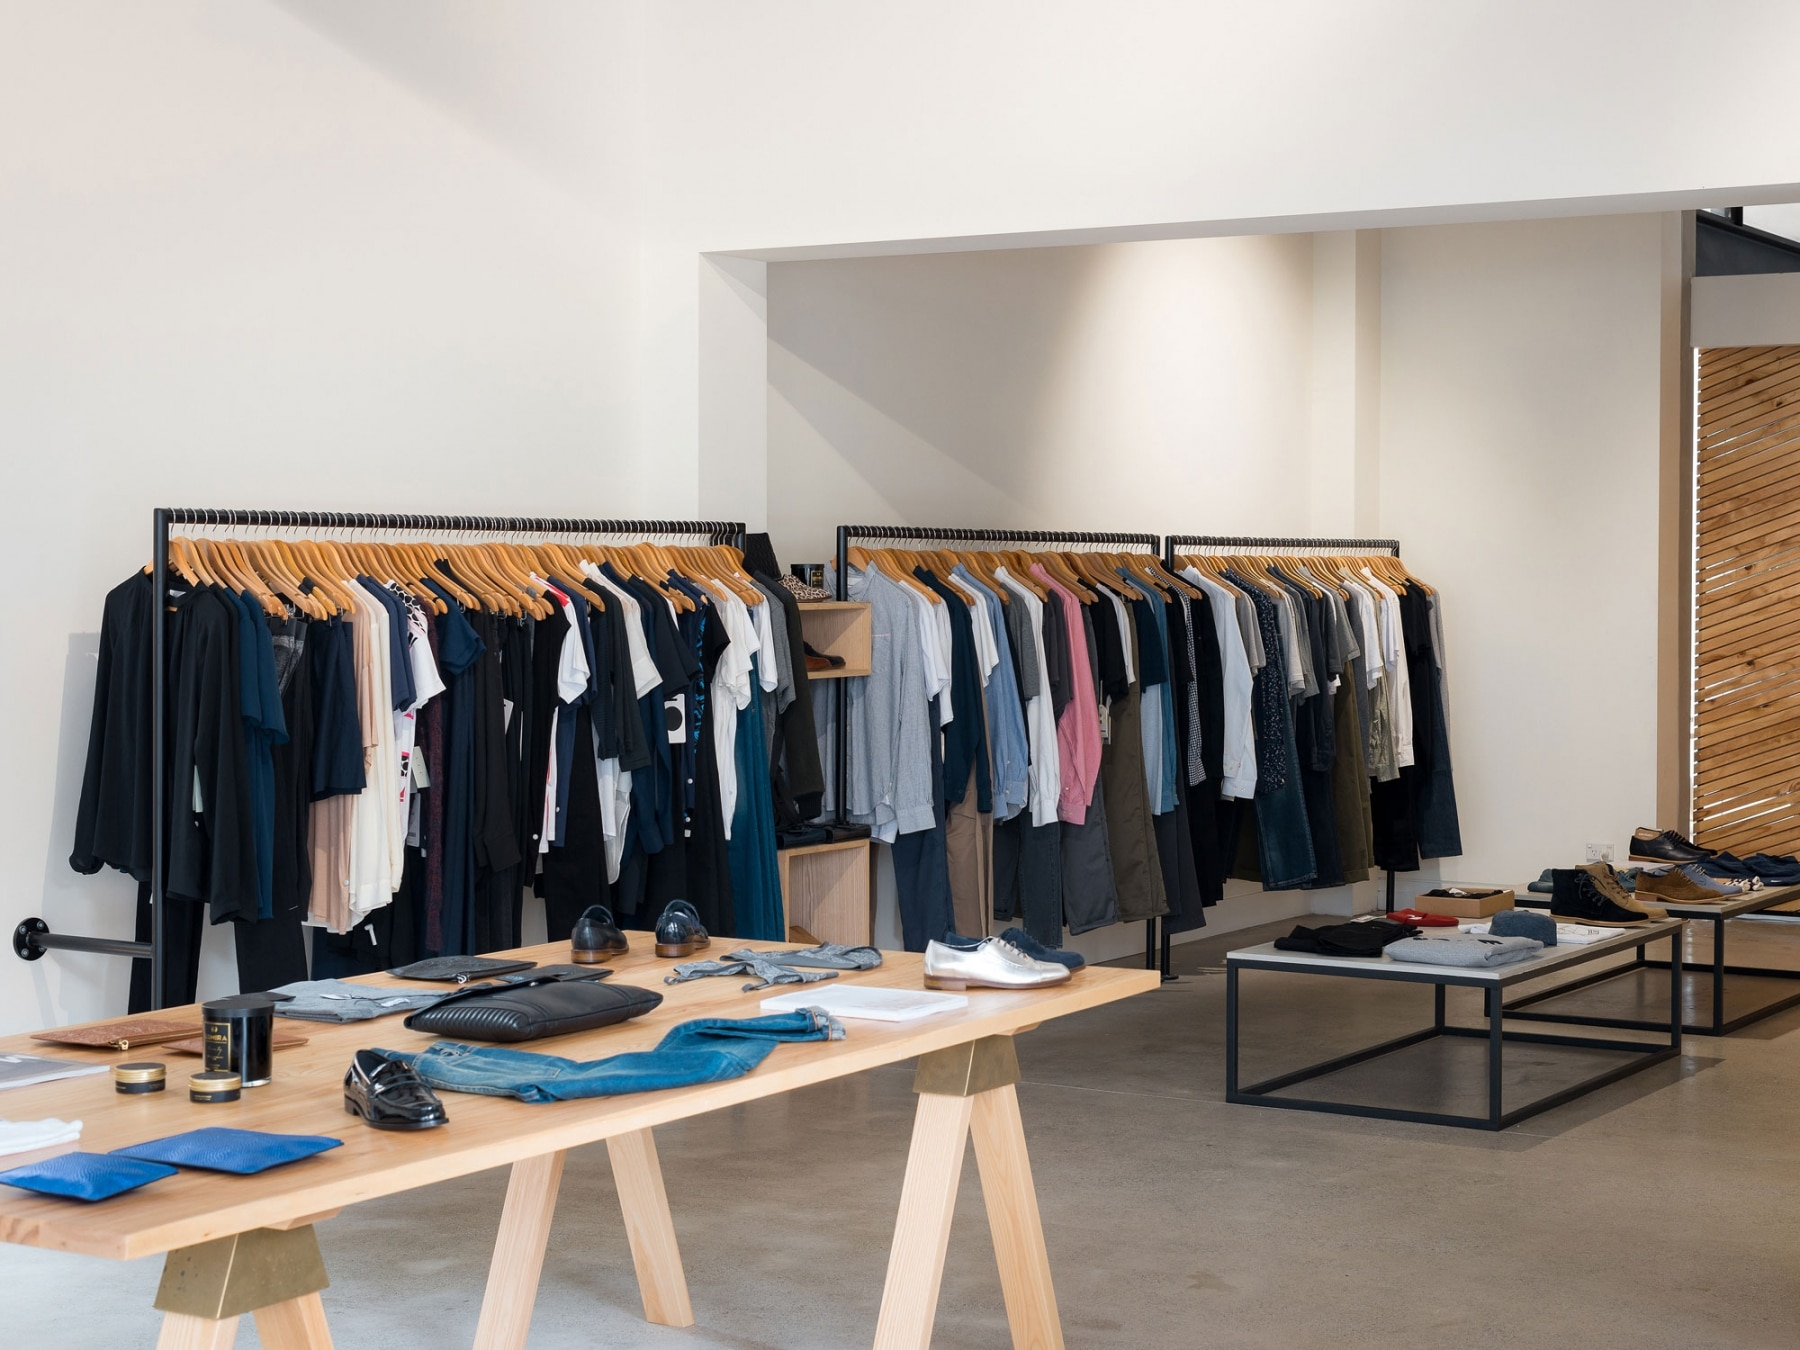 The_Stables_Retail_Interior_2